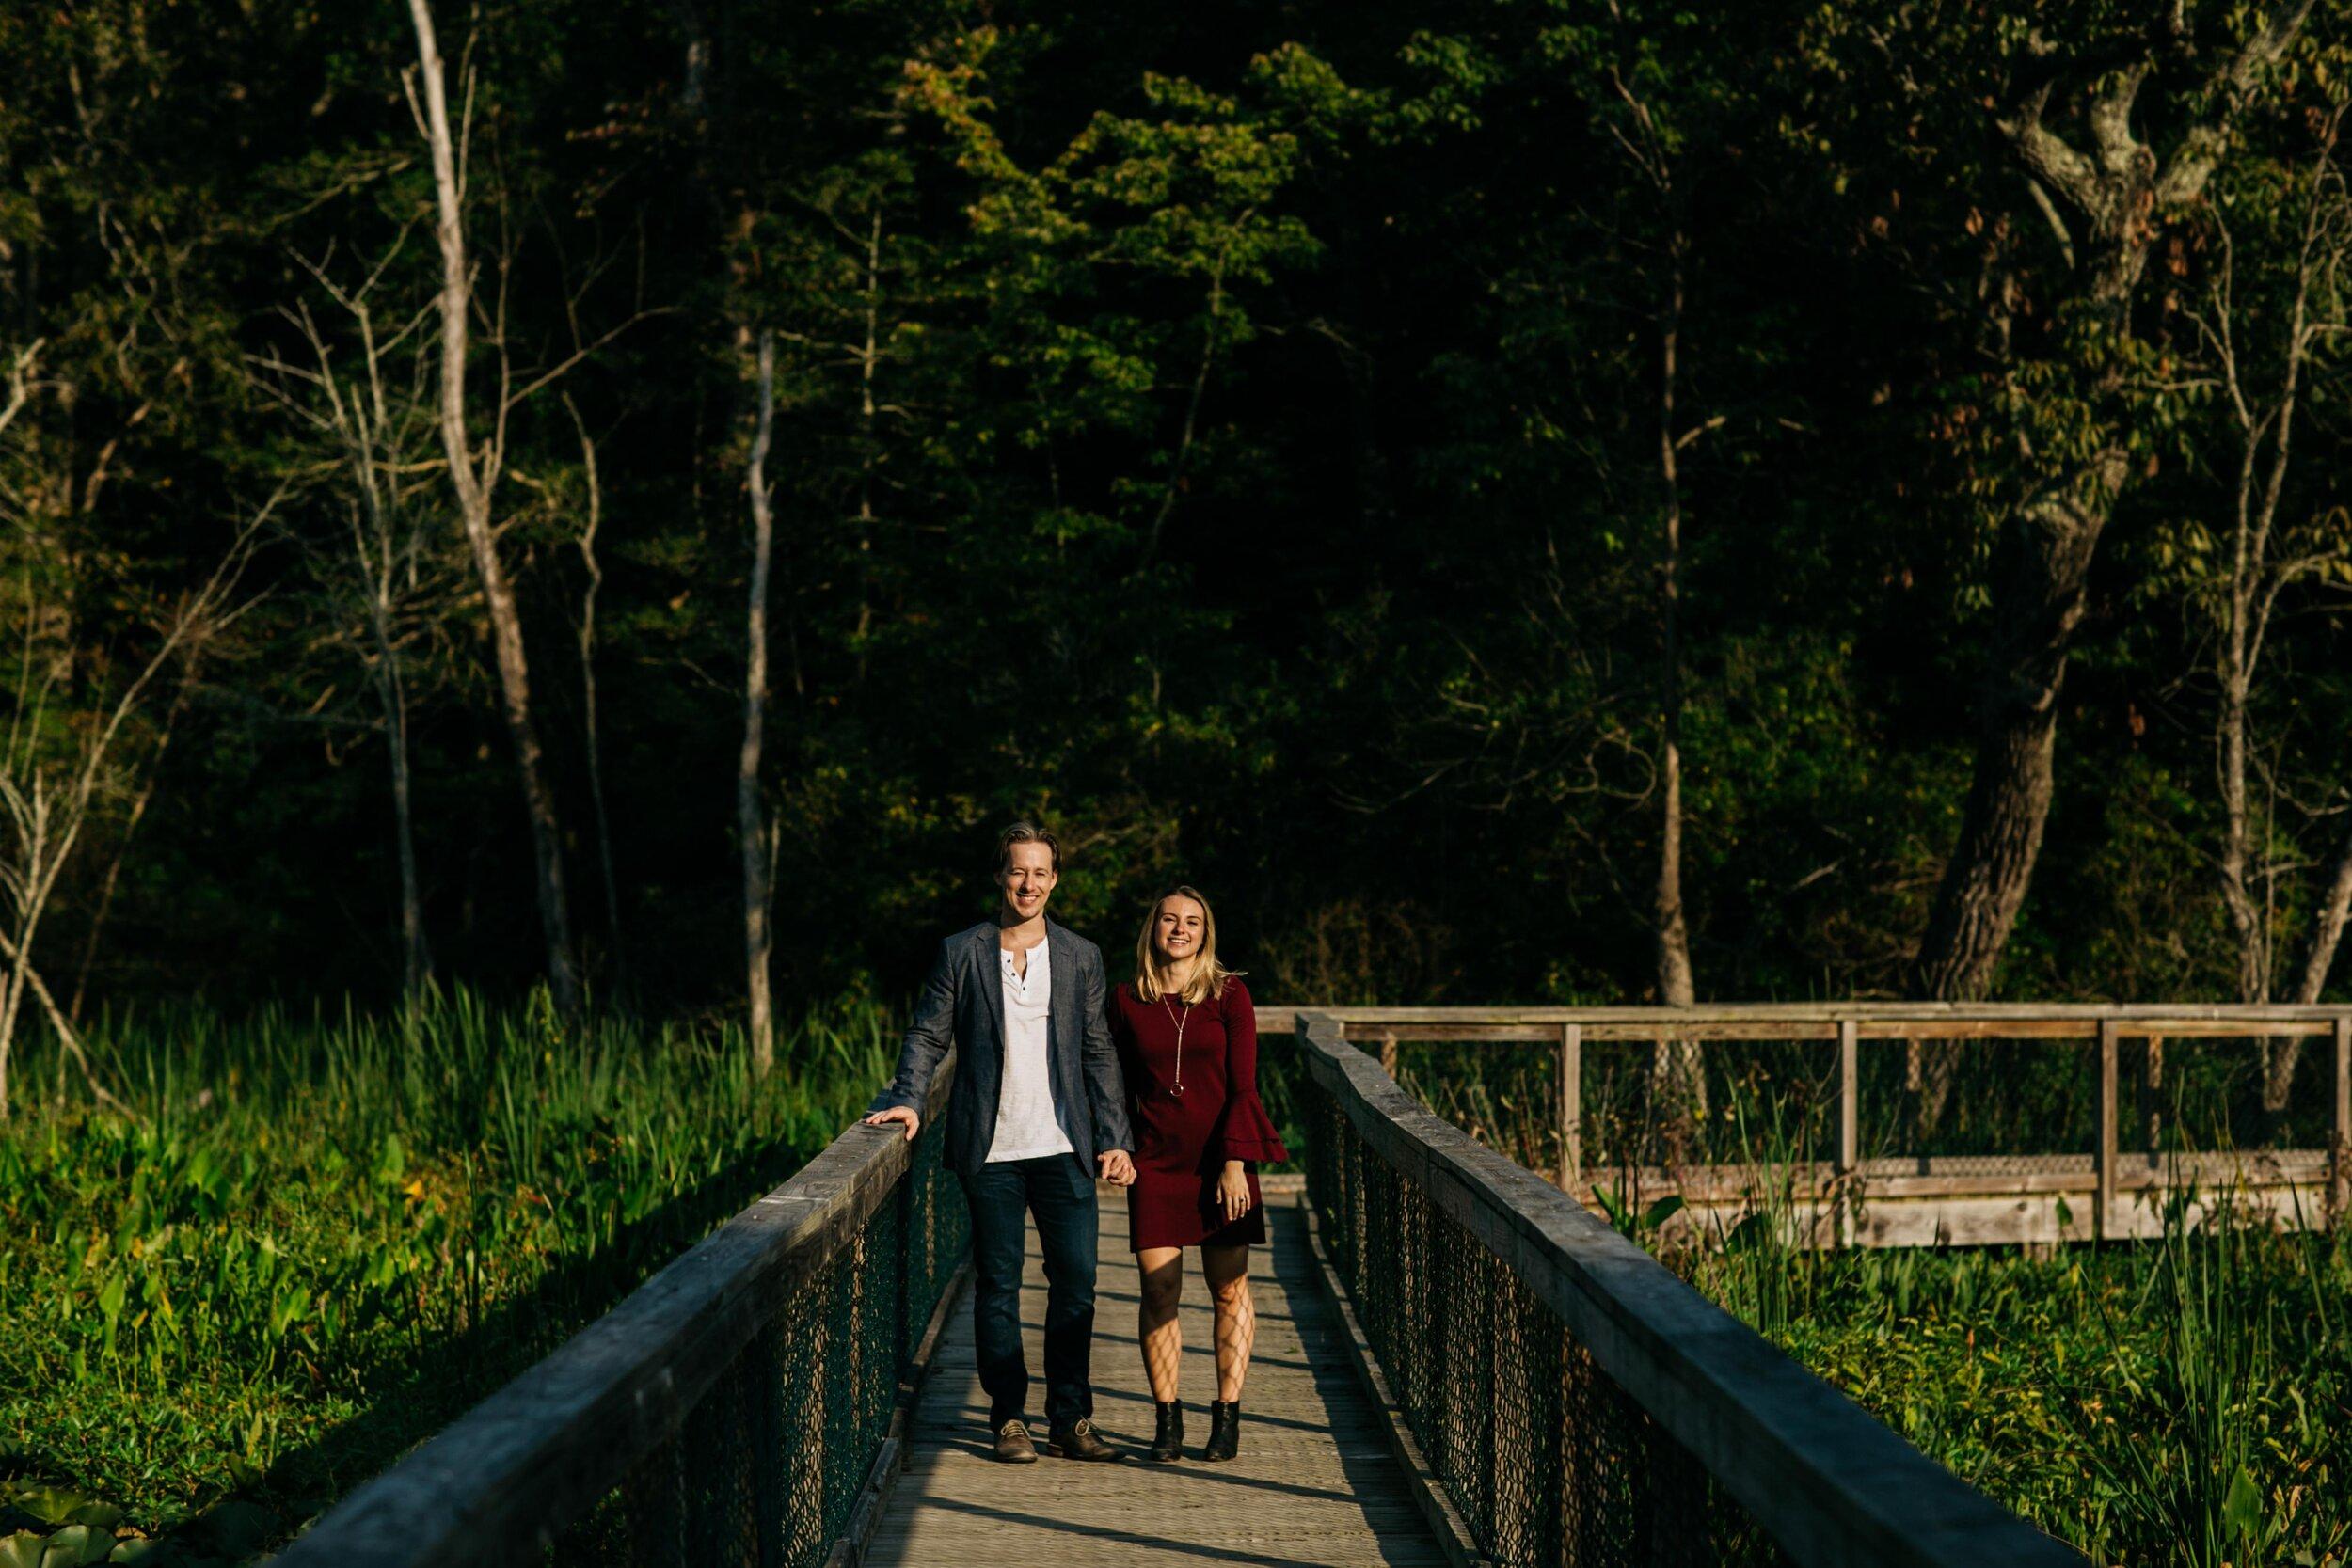 sasha_garth_engagement_mason_neck_state_park_summer_sunset_green_Forest-6.jpg